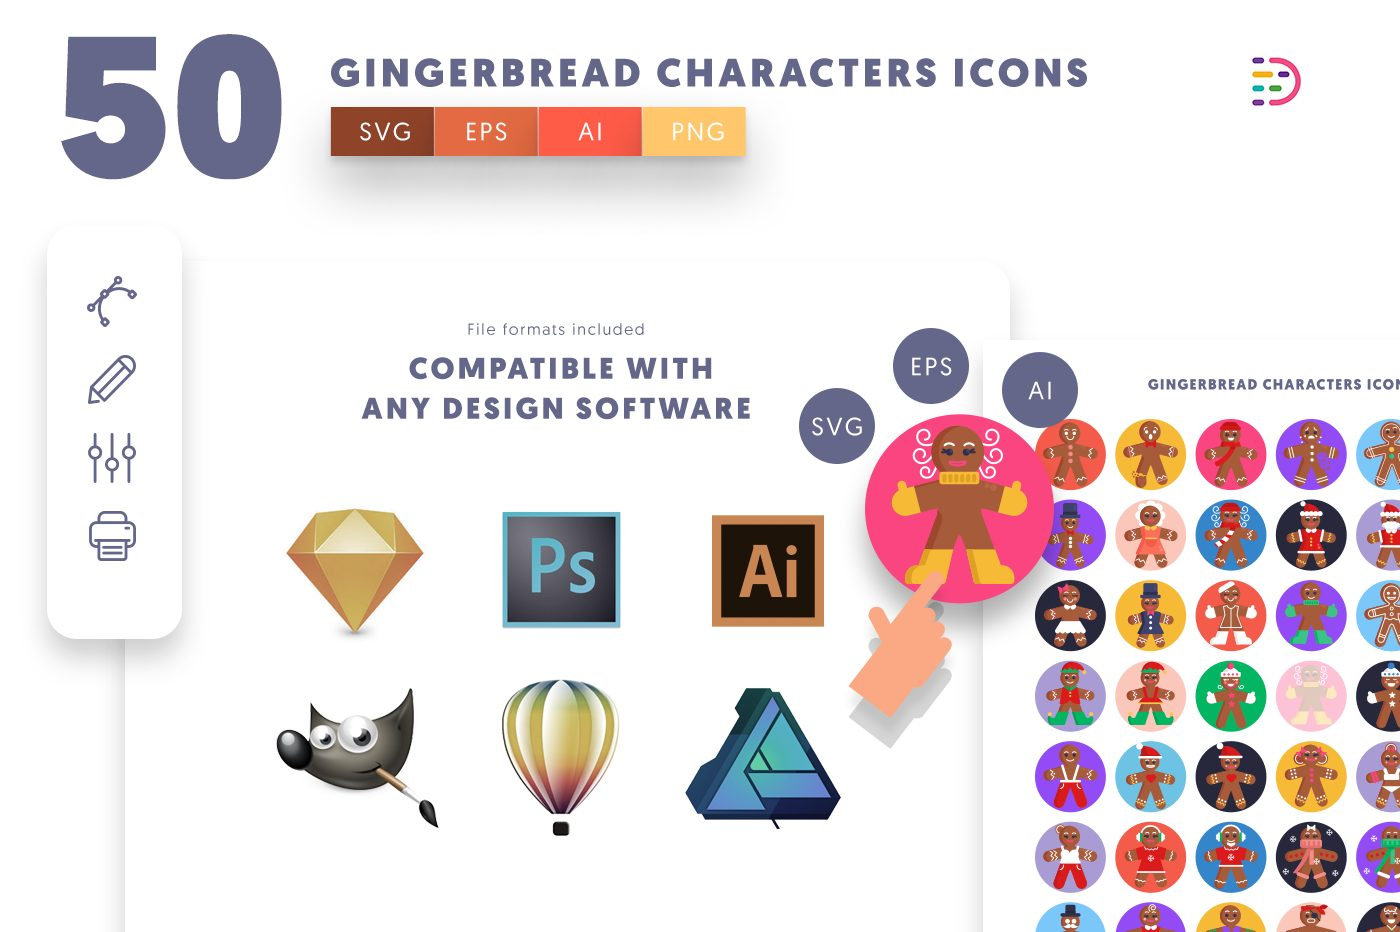 full vector 50 Gingerbread Characters Icons EPS, SVG, PNG